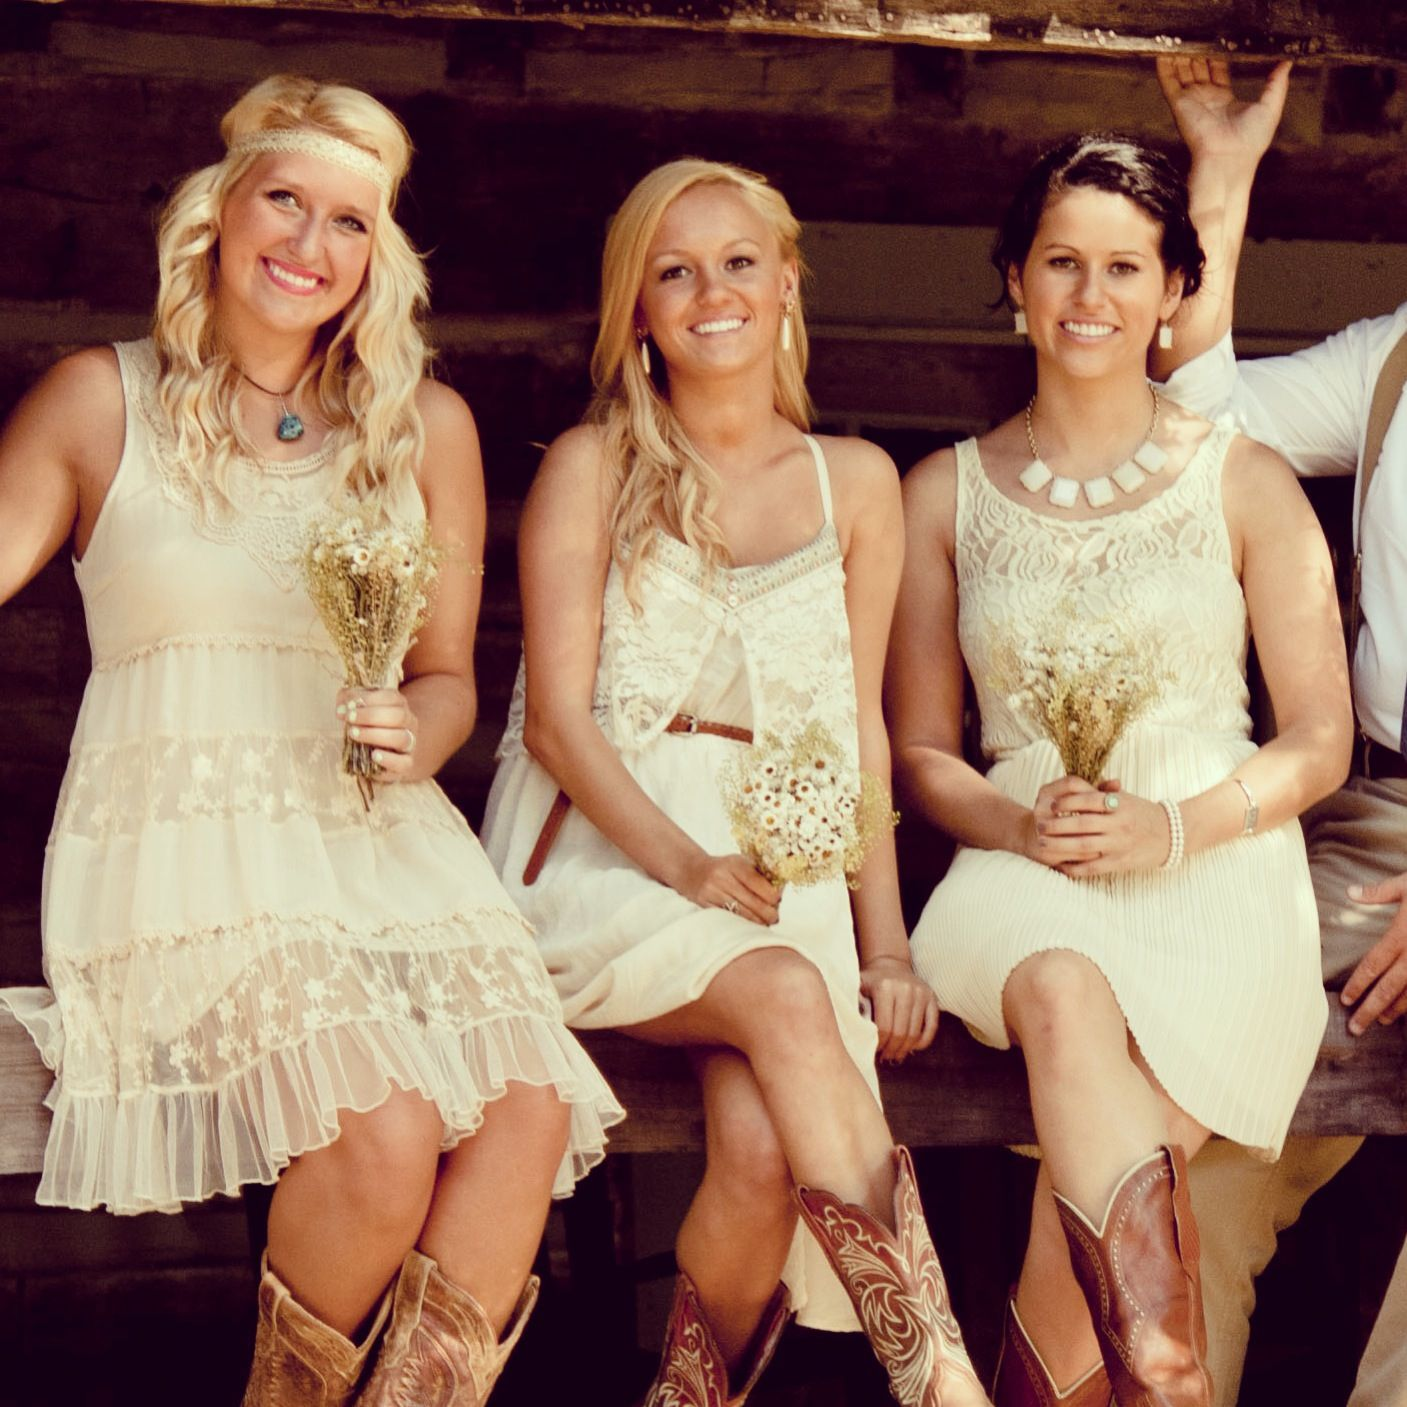 Country wedding bridesmaids someday when i become domesticated